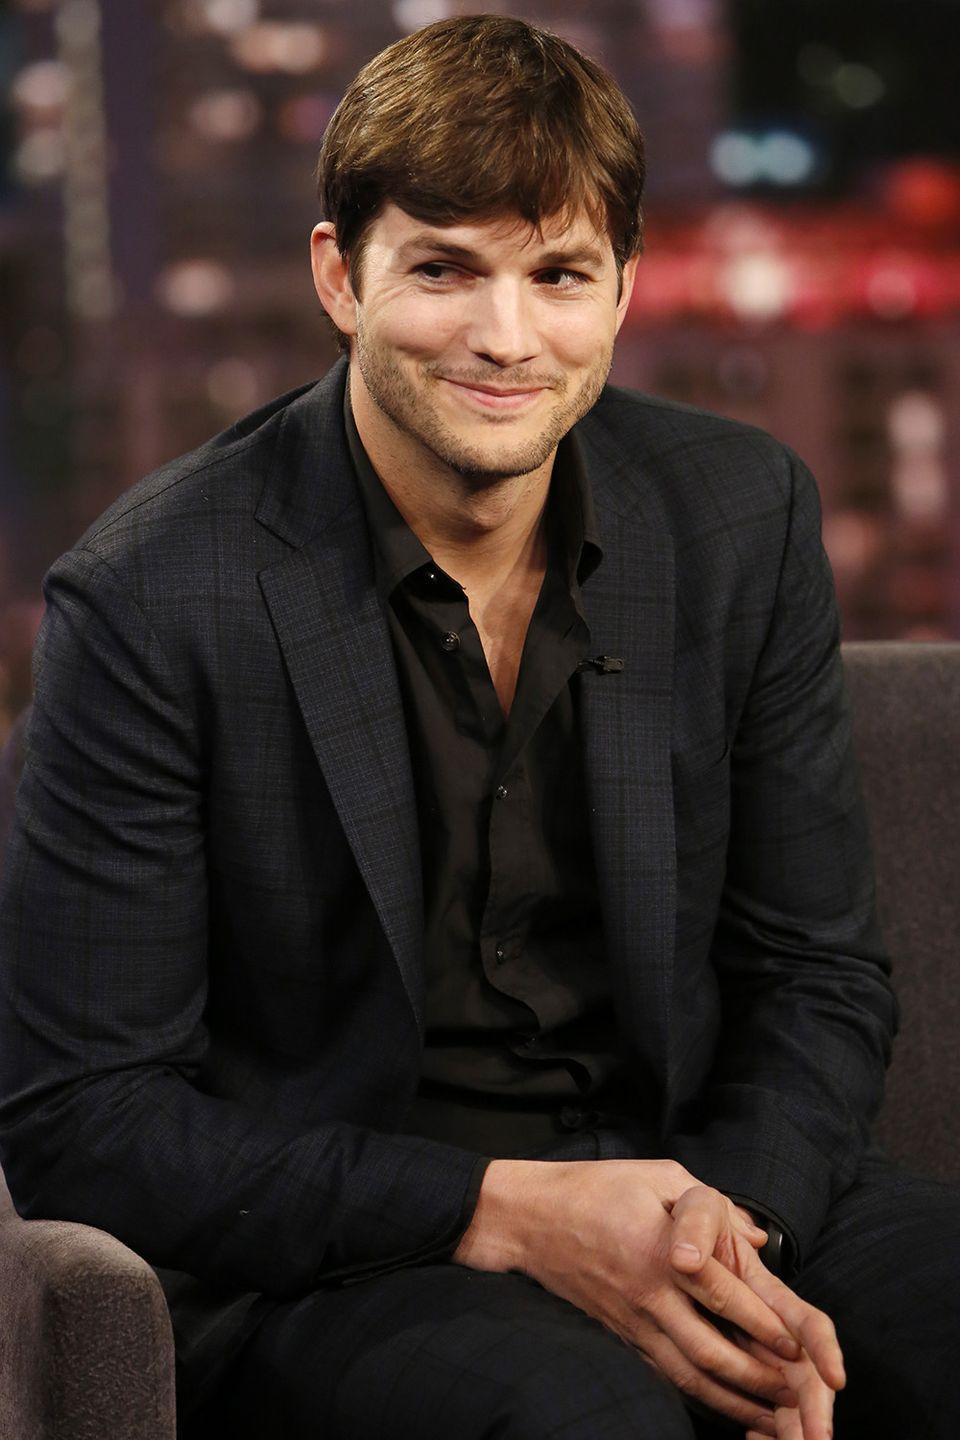 "<p><strong>Born</strong>: Christopher Ashton Kutcher</p><p>Ashton Kutcher revealed his real first name at the 2013 <span class=""redactor-unlink"">Teen Choice Awards, where he received the Ultimate Choice Award.</span> The <a href=""https://www.youtube.com/watch?v=f6-lEGEgIzk"" rel=""nofollow noopener"" target=""_blank"" data-ylk=""slk:actor joked"" class=""link rapid-noclick-resp"">actor joked</a> that it's actually the ""old guy"" award and he feels like a fraud, <span class=""redactor-unlink"">revealing</span>: ""My name is not even actually Ashton."" The funny guy explained that he decided to go by his middle name when he was first trying to make it in Hollywood at the age of 19.</p>"